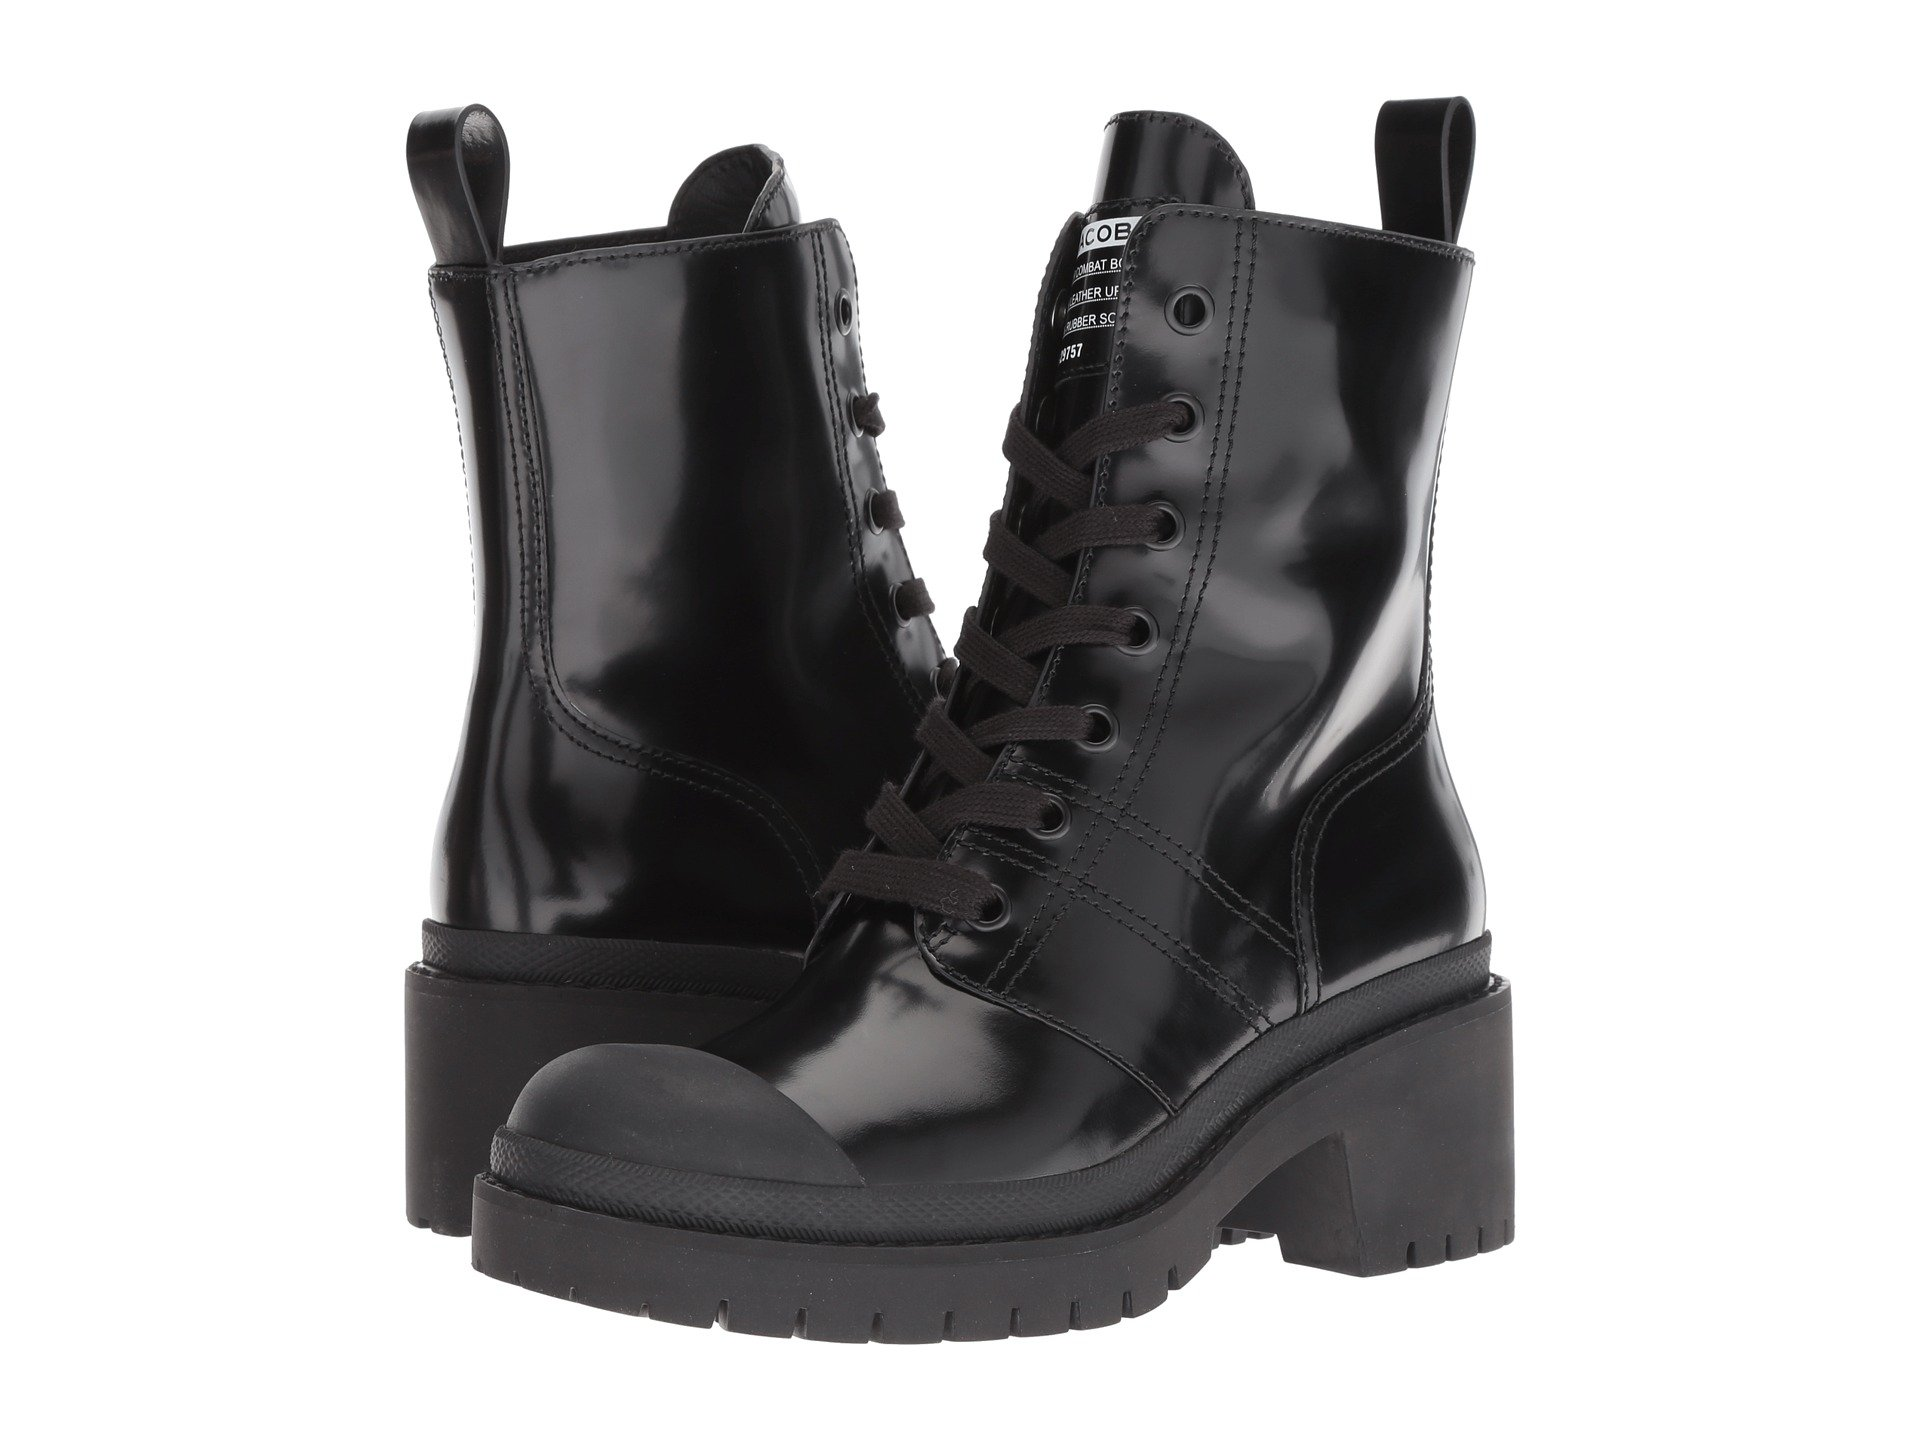 6088e73a80f Marc Jacobs Bristol Laced-Up Boot at Luxury.Zappos.com